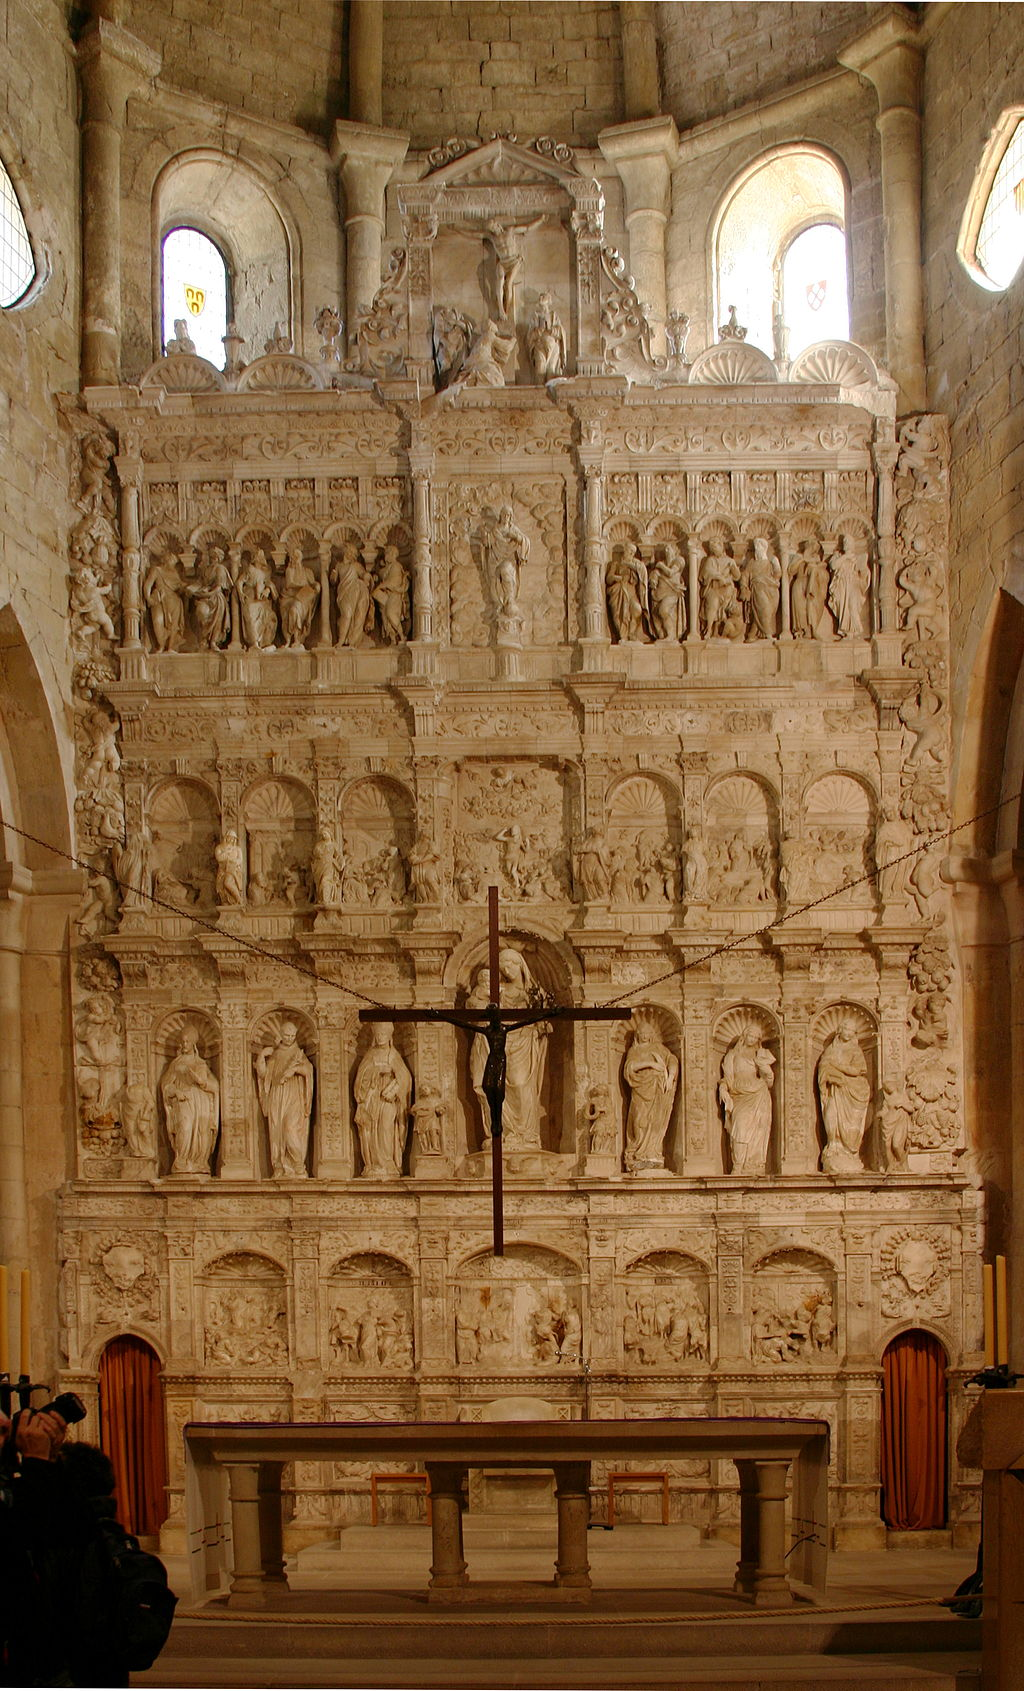 Retable and crucifix - Monastery of Poblet - Catalonia 2014